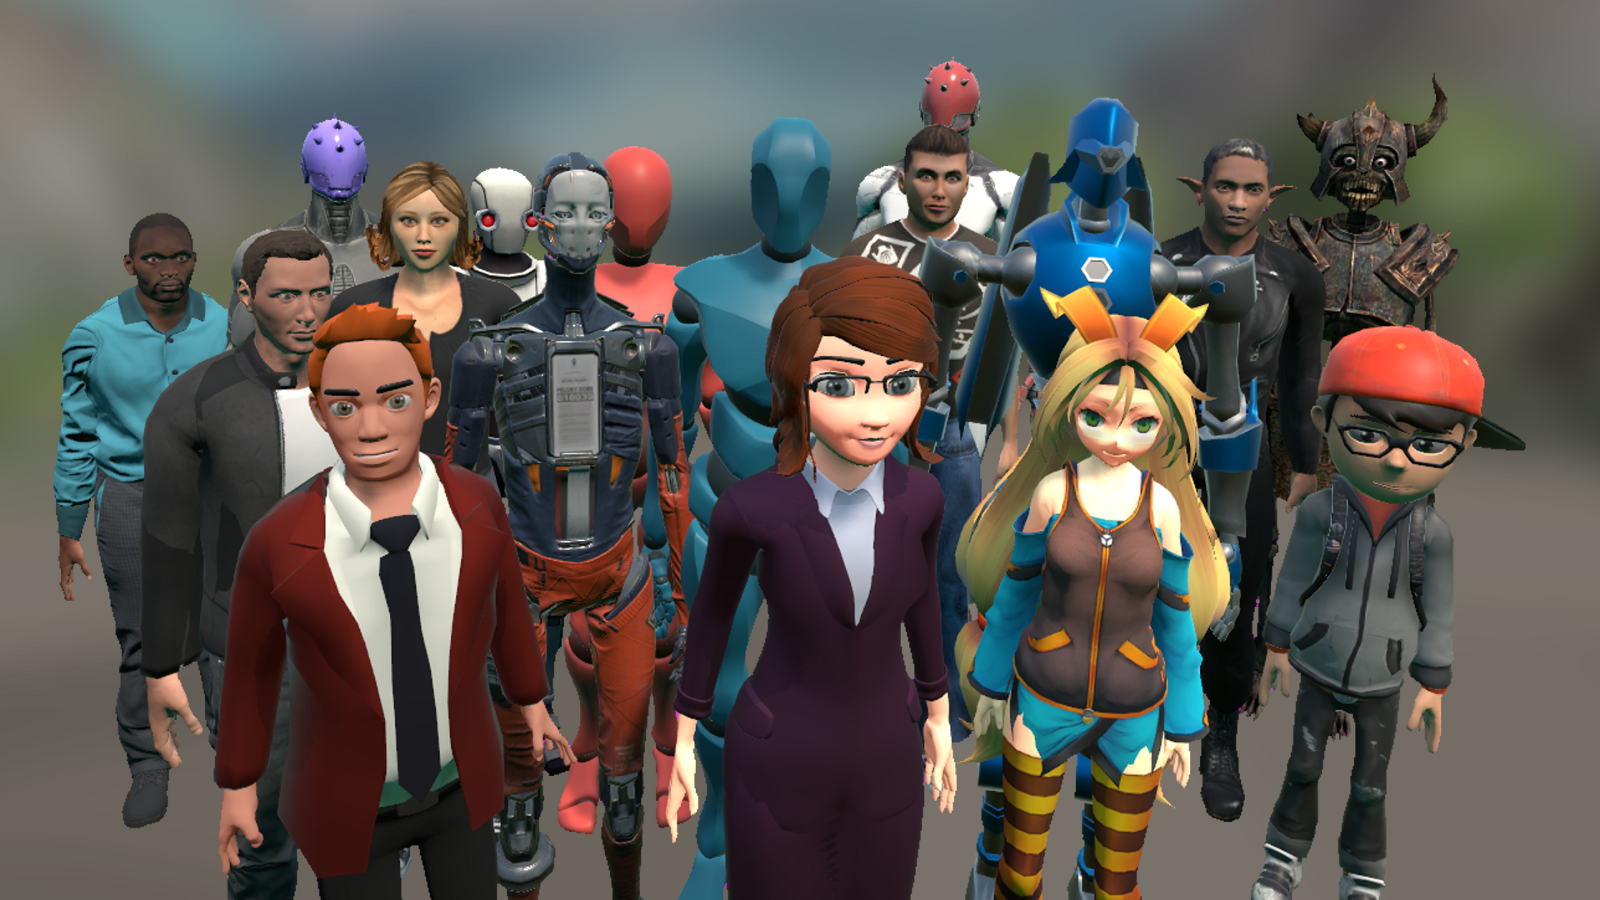 The beginning of the Social VR avatar revolution